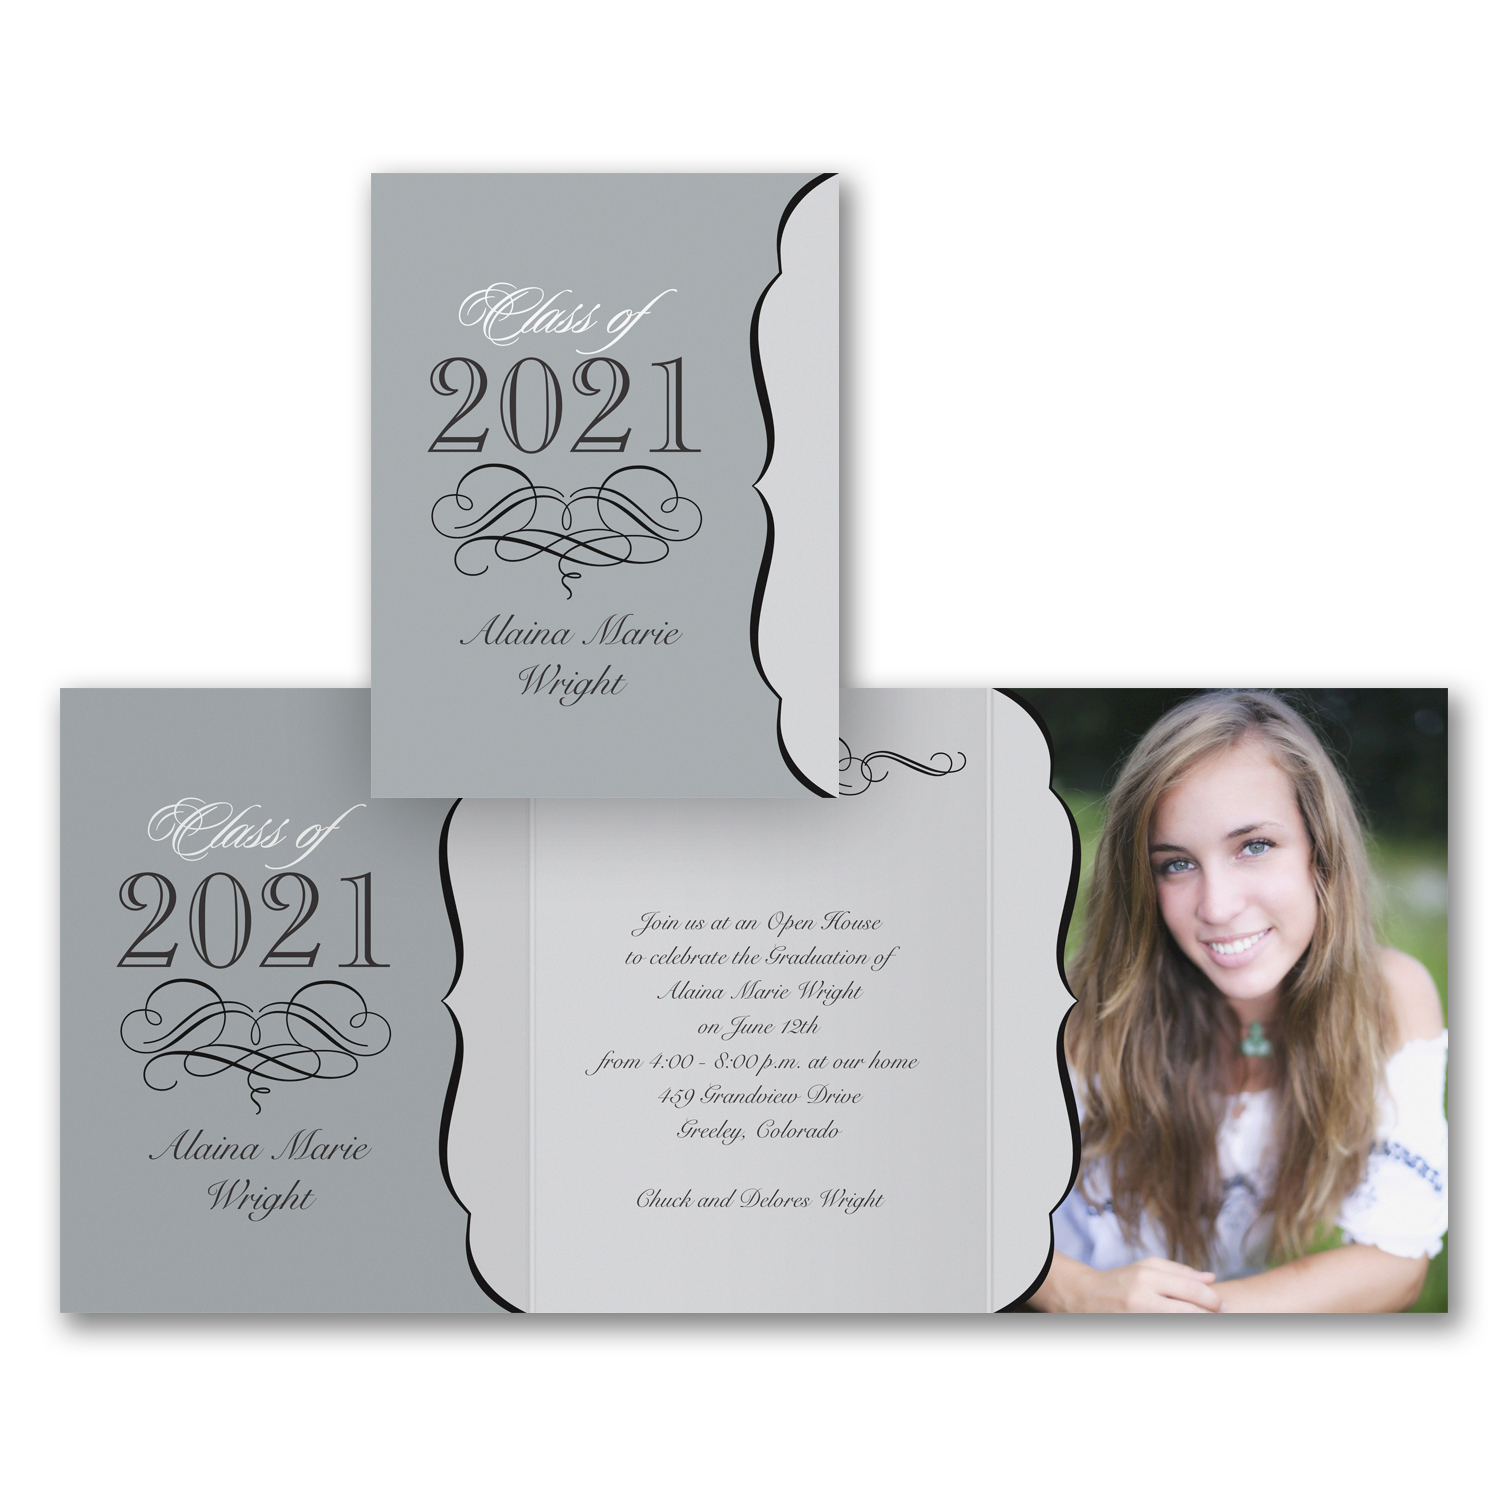 today's vintage trifold photo graduation invitation